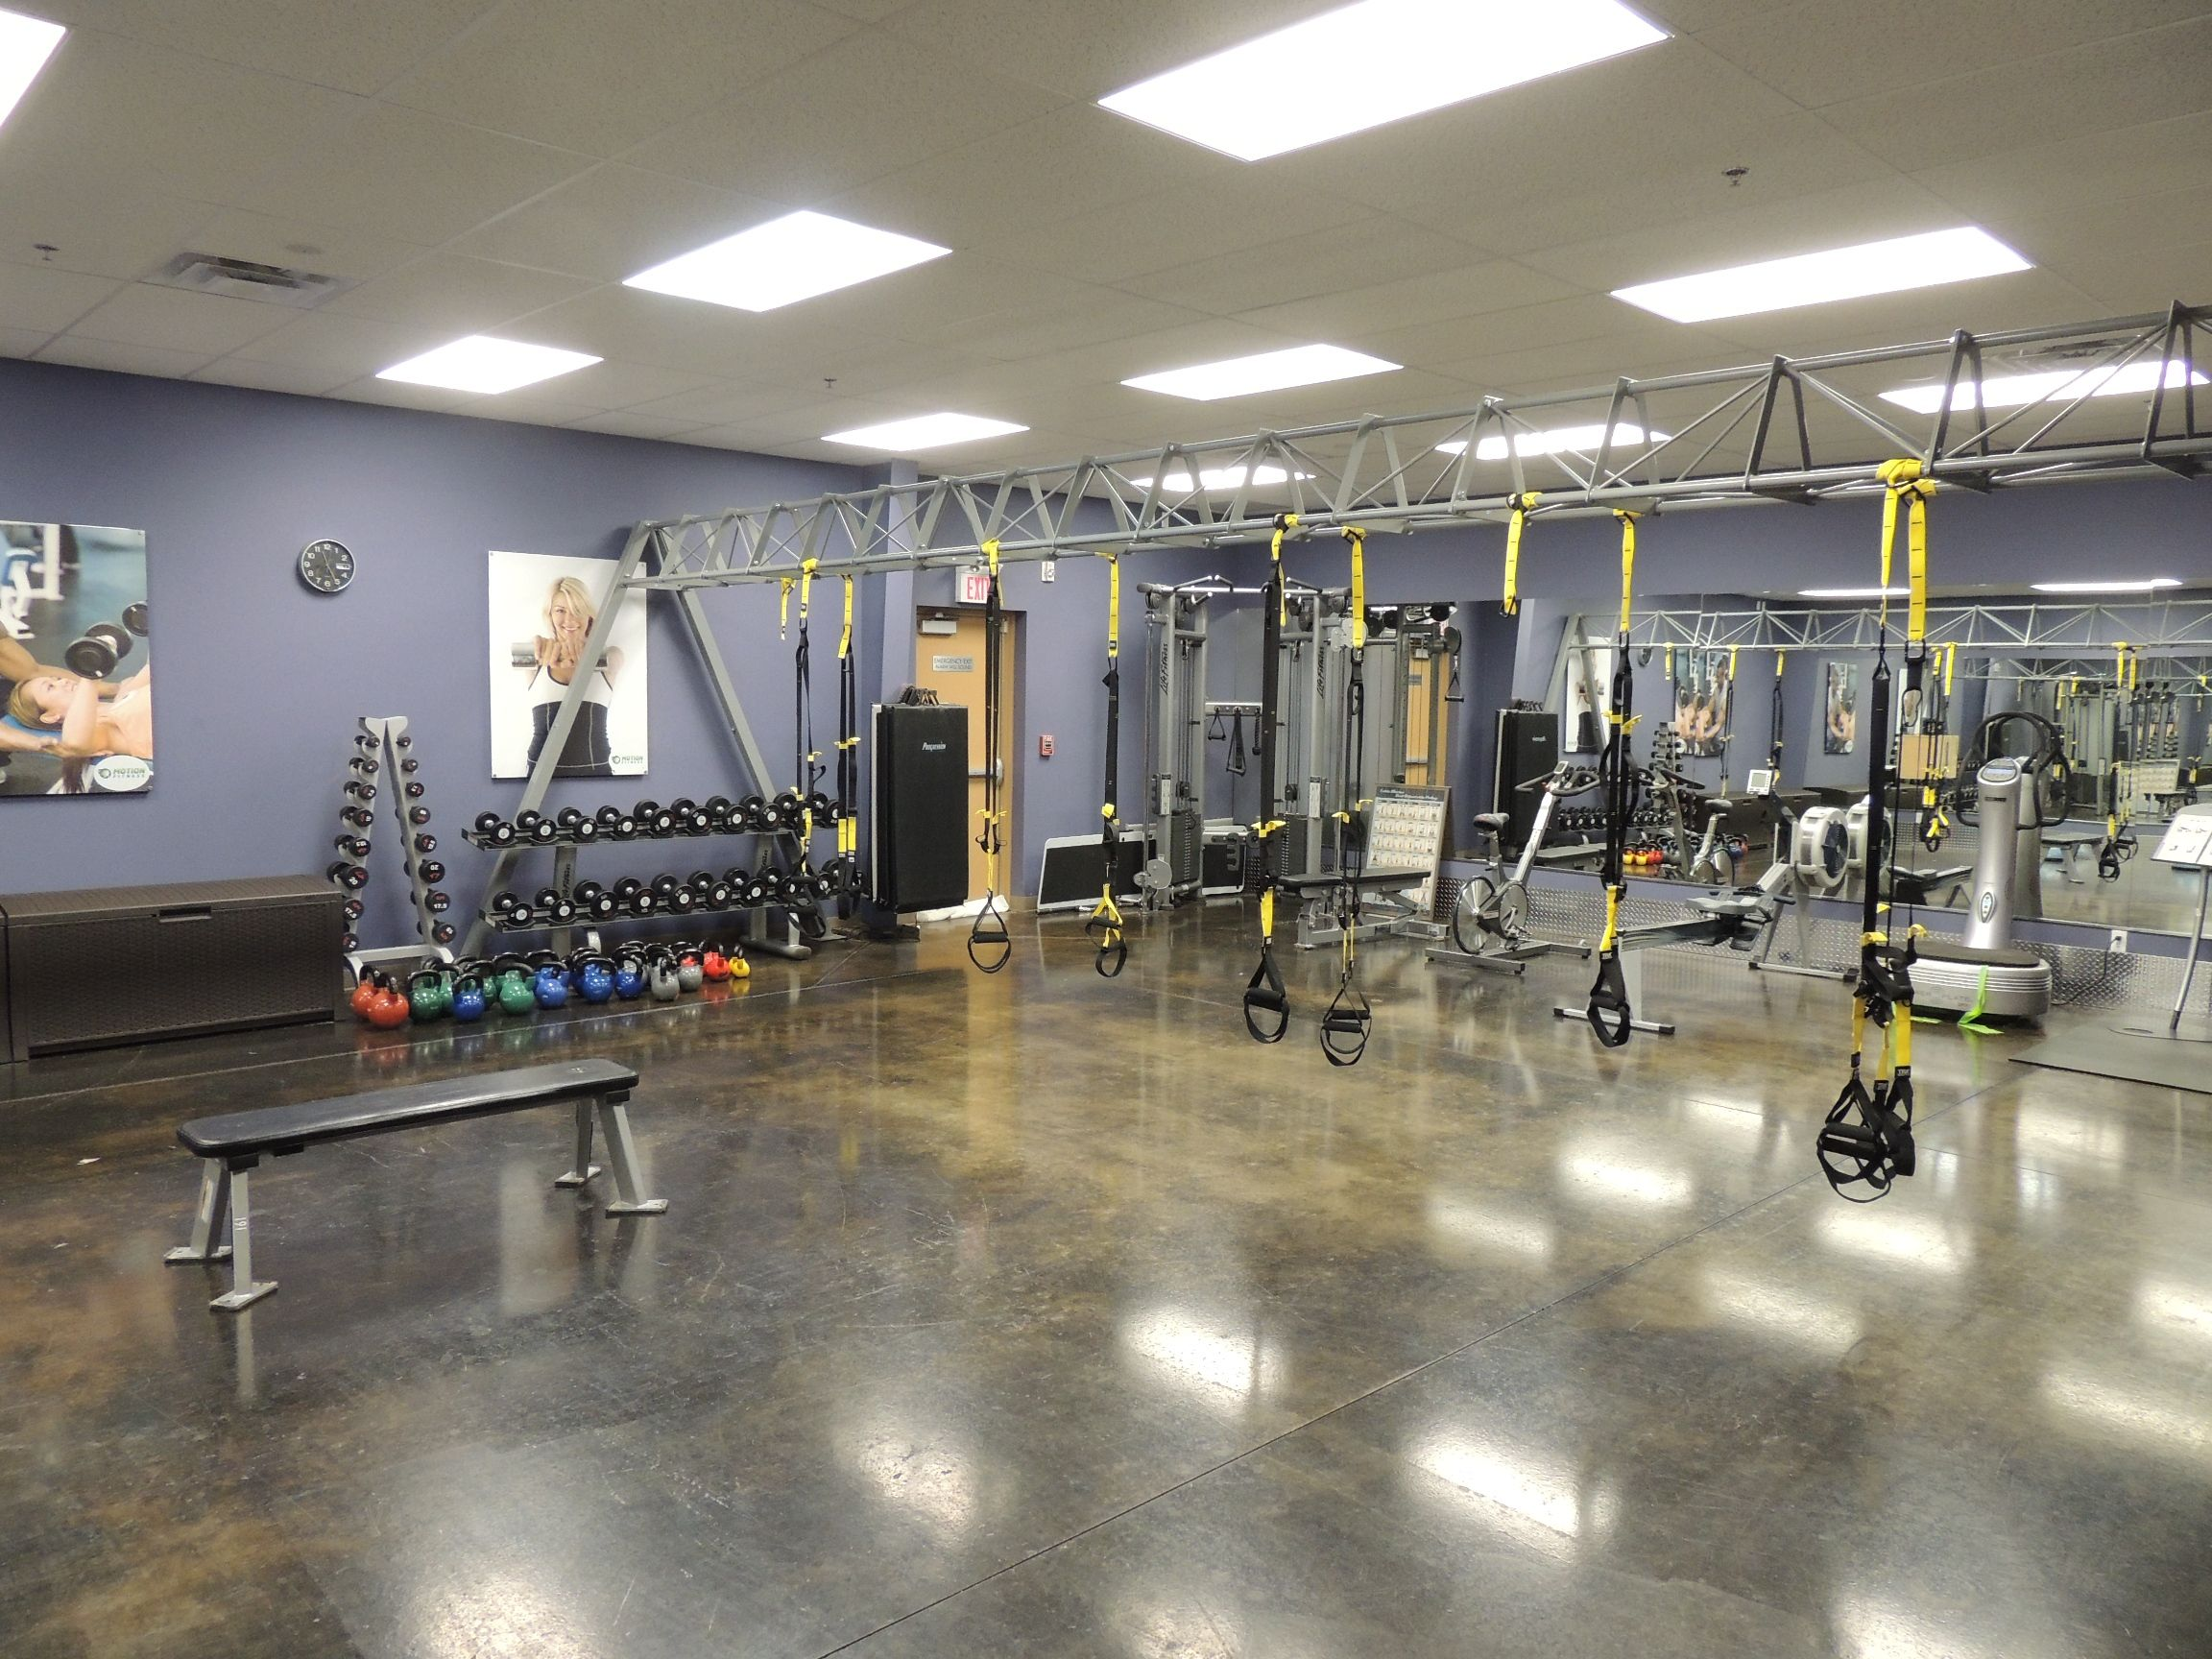 Image result for personal training studio Image